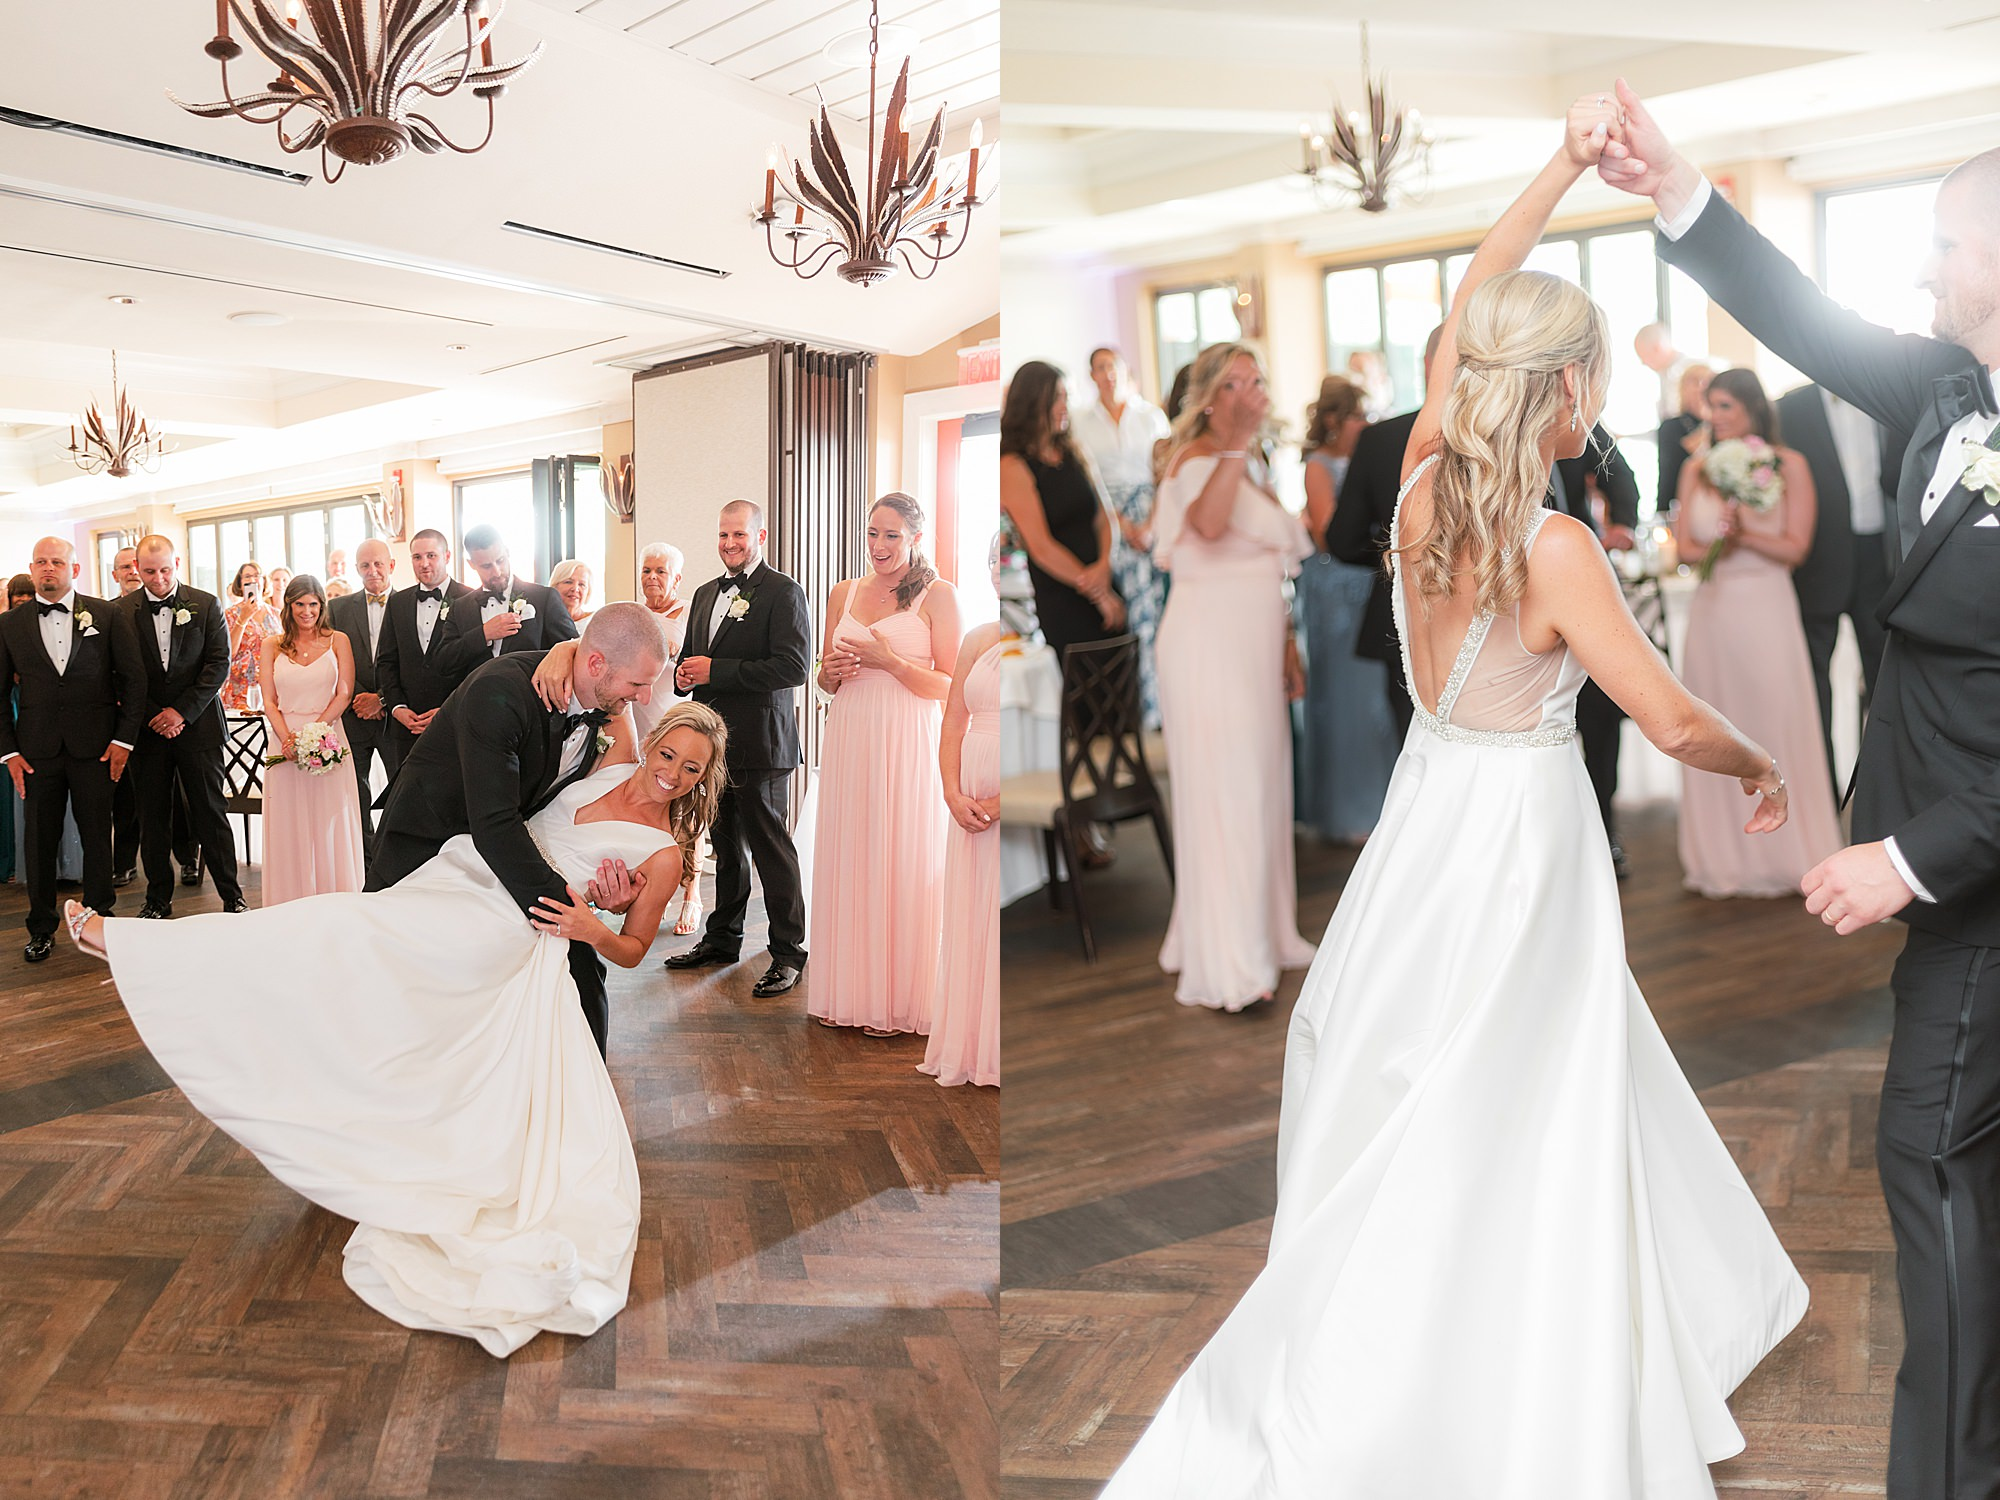 Natural and Vibrant Wedding Photography at the Reeds in Stone Harbor NJ by Magdalena Studios 0058